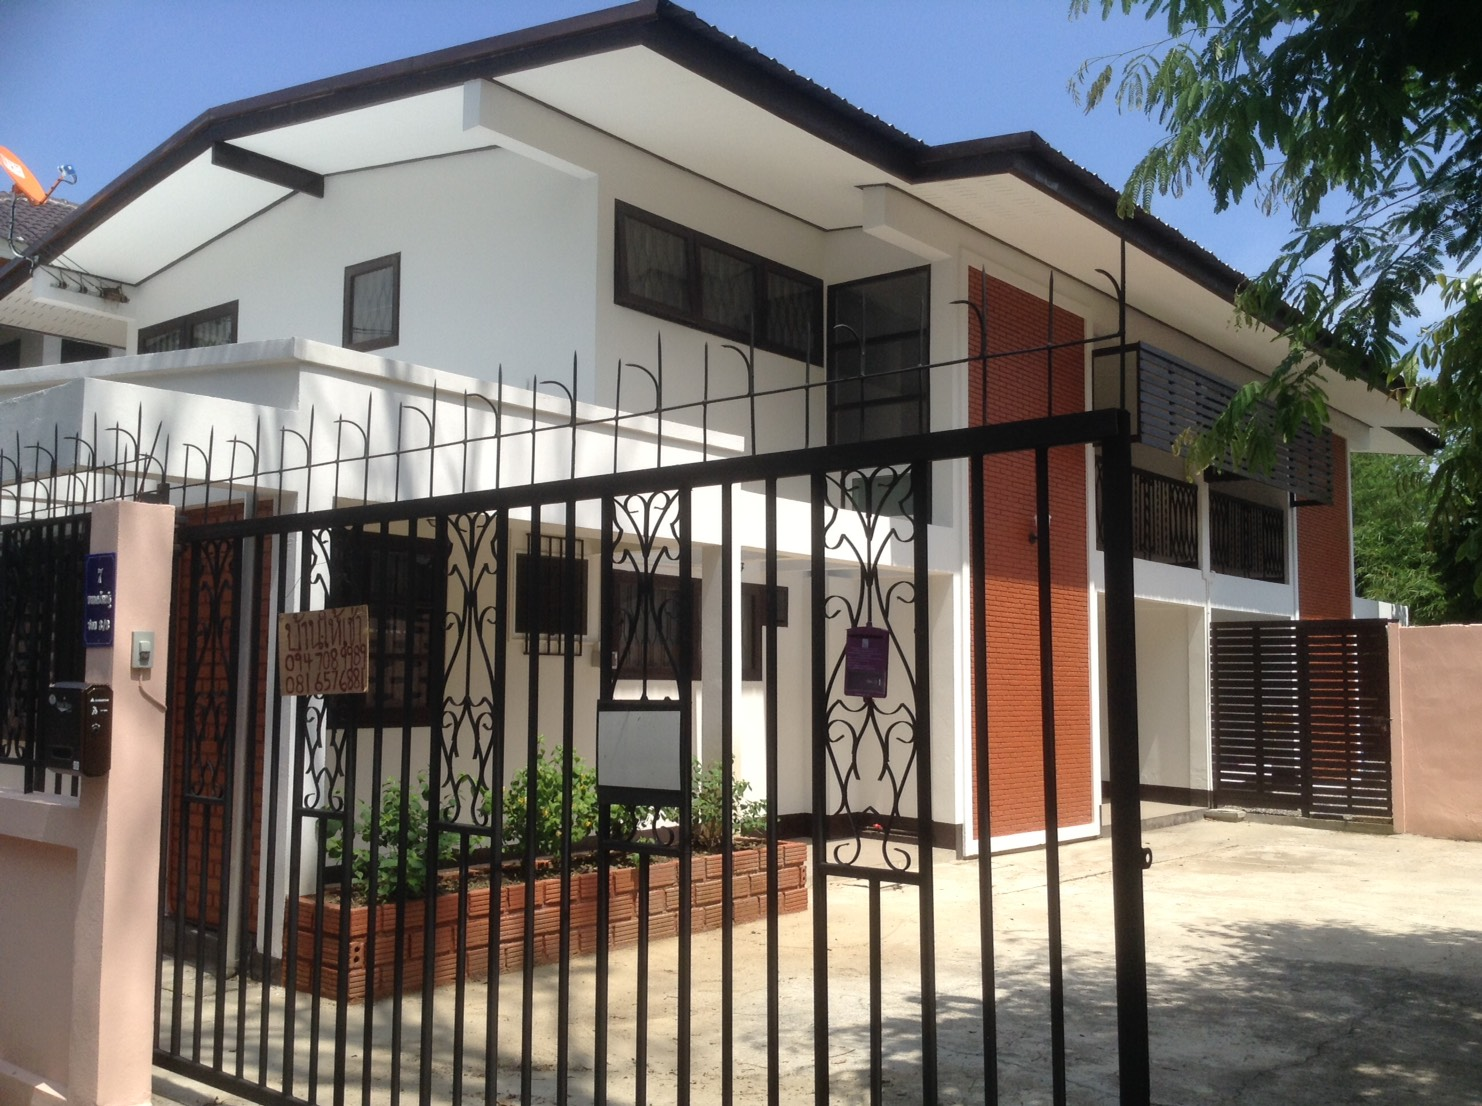 Hr4624 house for rent in city chiang mai for Chiang mai house for rent swimming pool